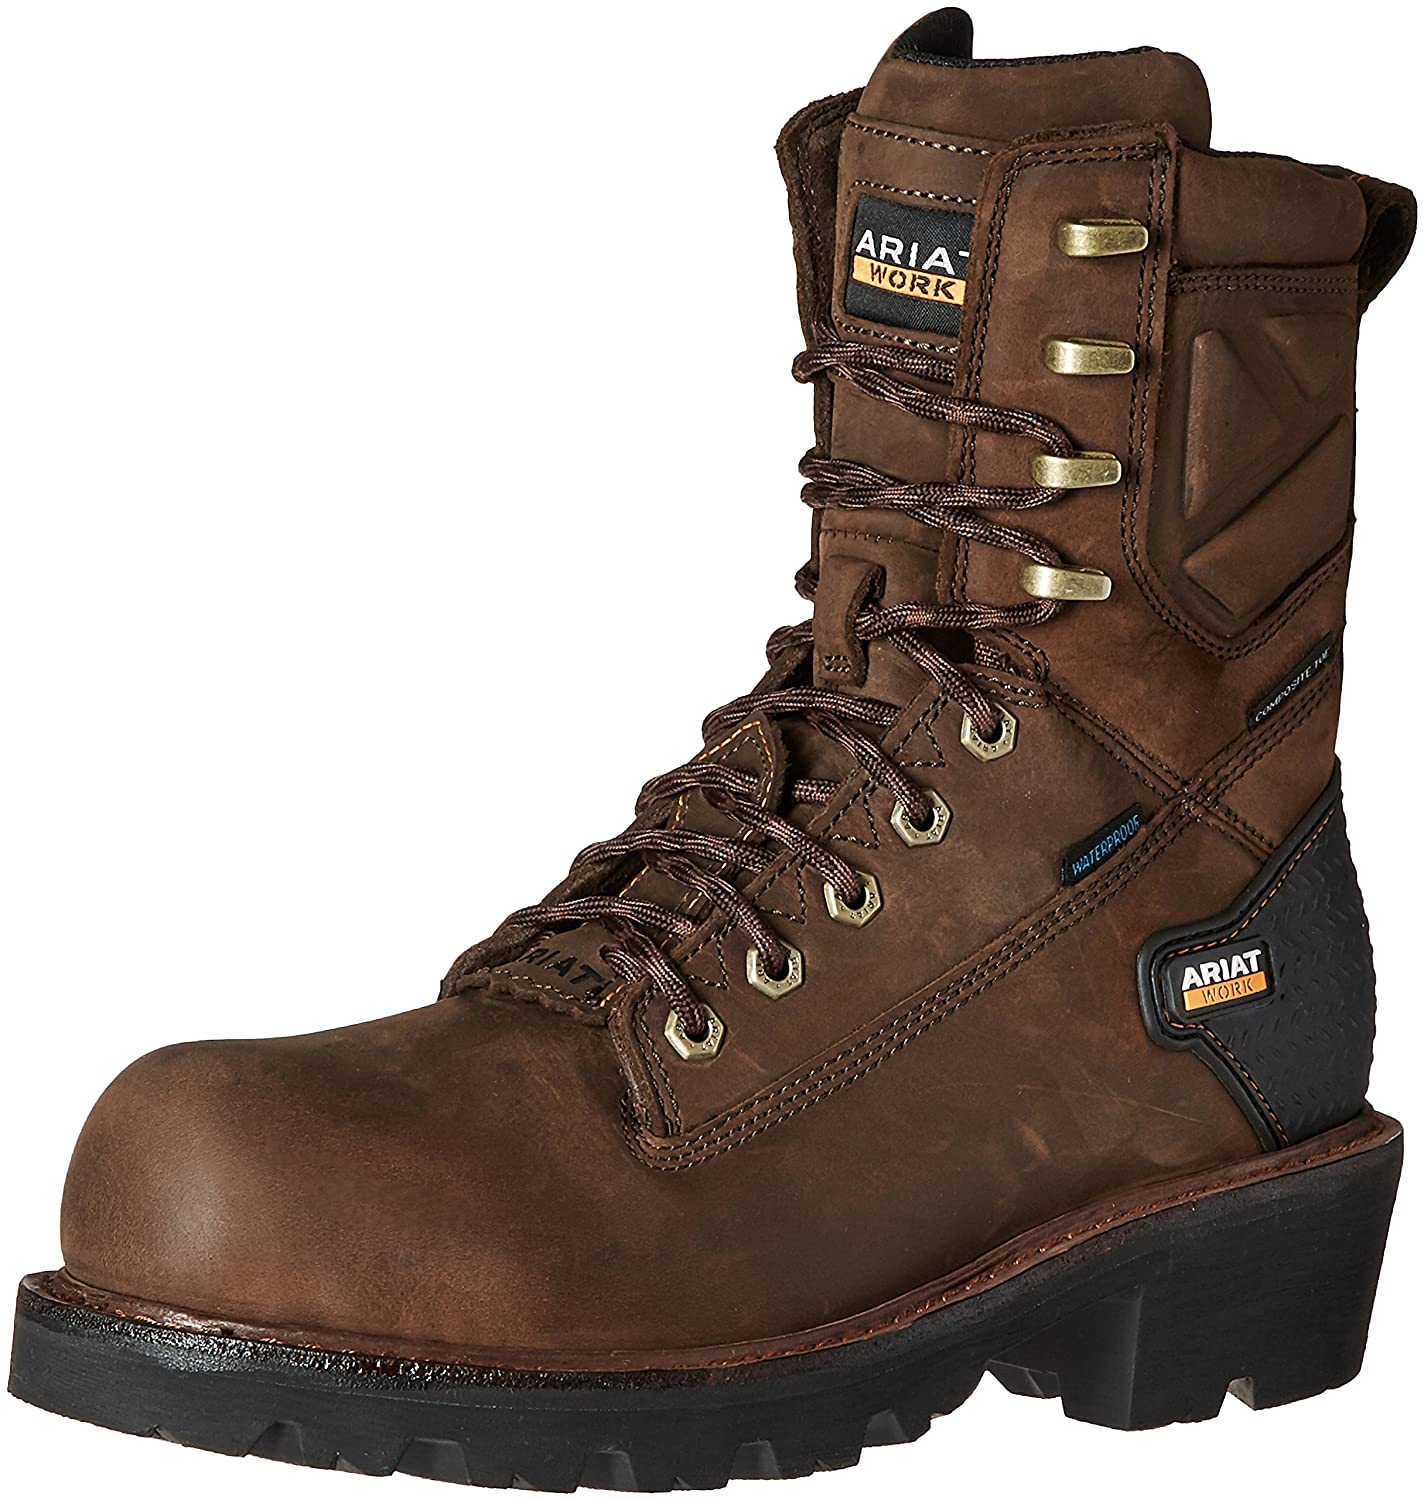 Ariat メンズ Oily Distressed Brown 9 D(M) US 9 D(M) USOily Distressed Brown B01BL5Z0B6